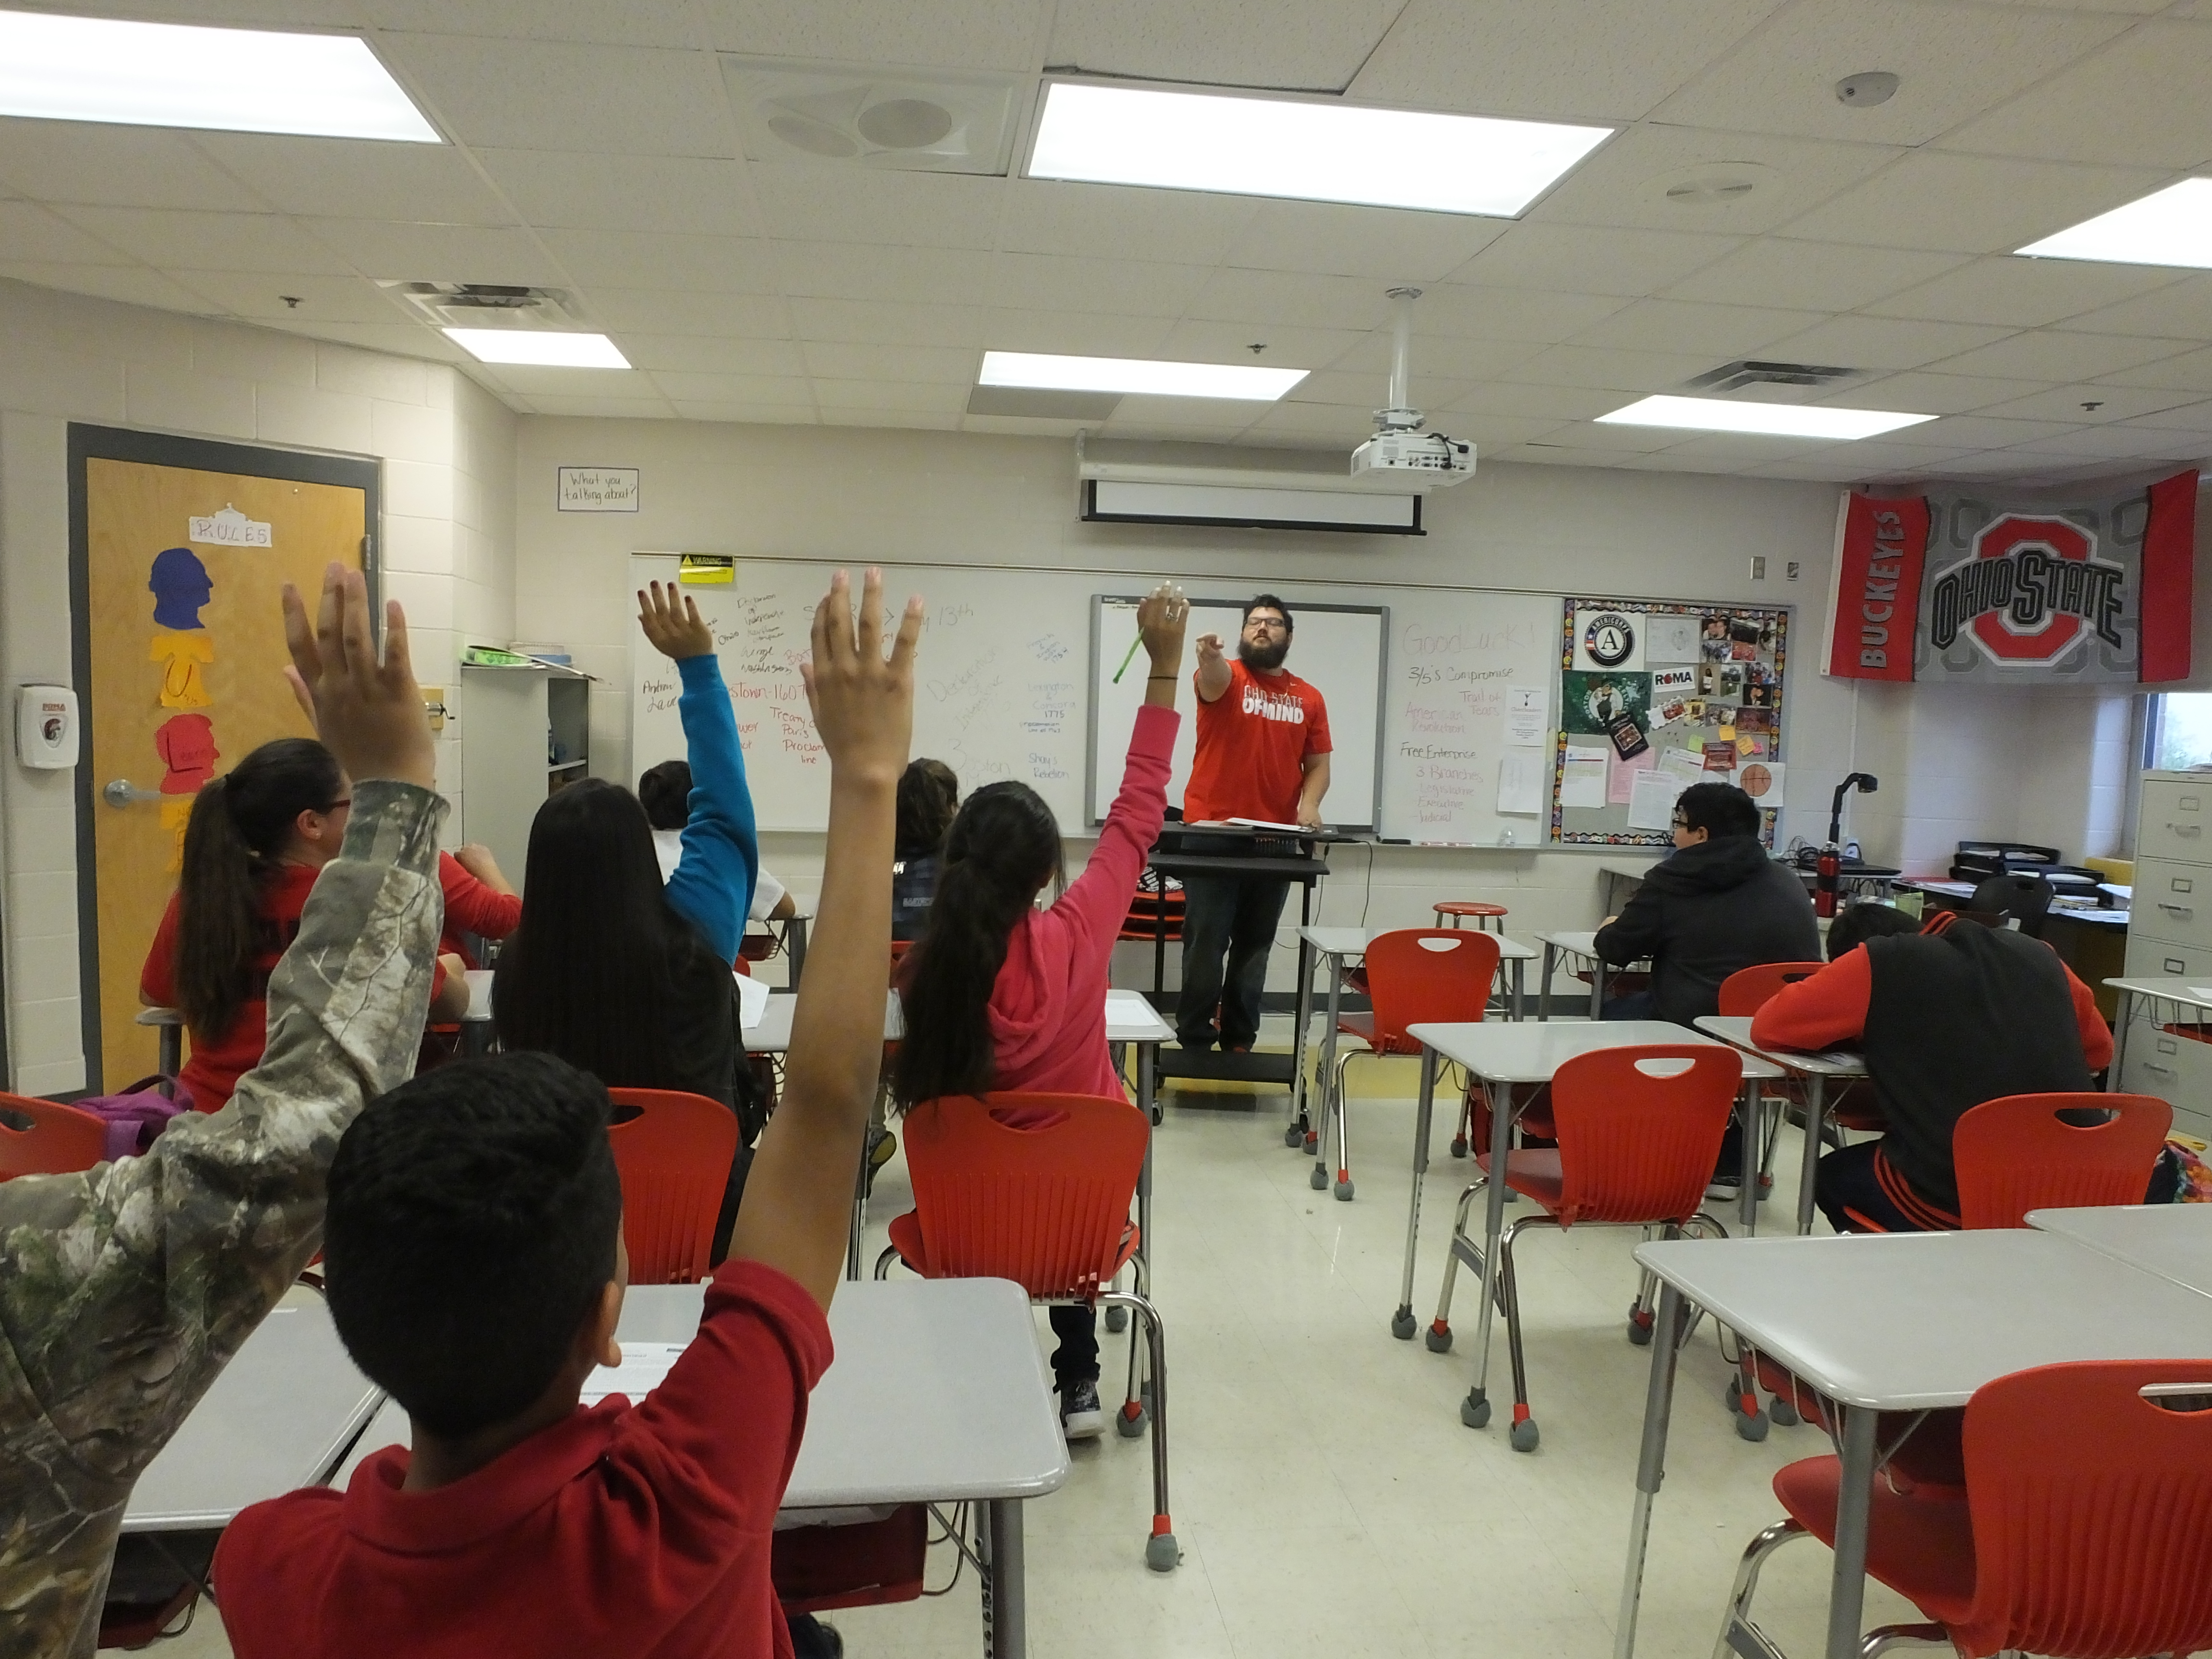 Teacher calling on students with raised hands in class